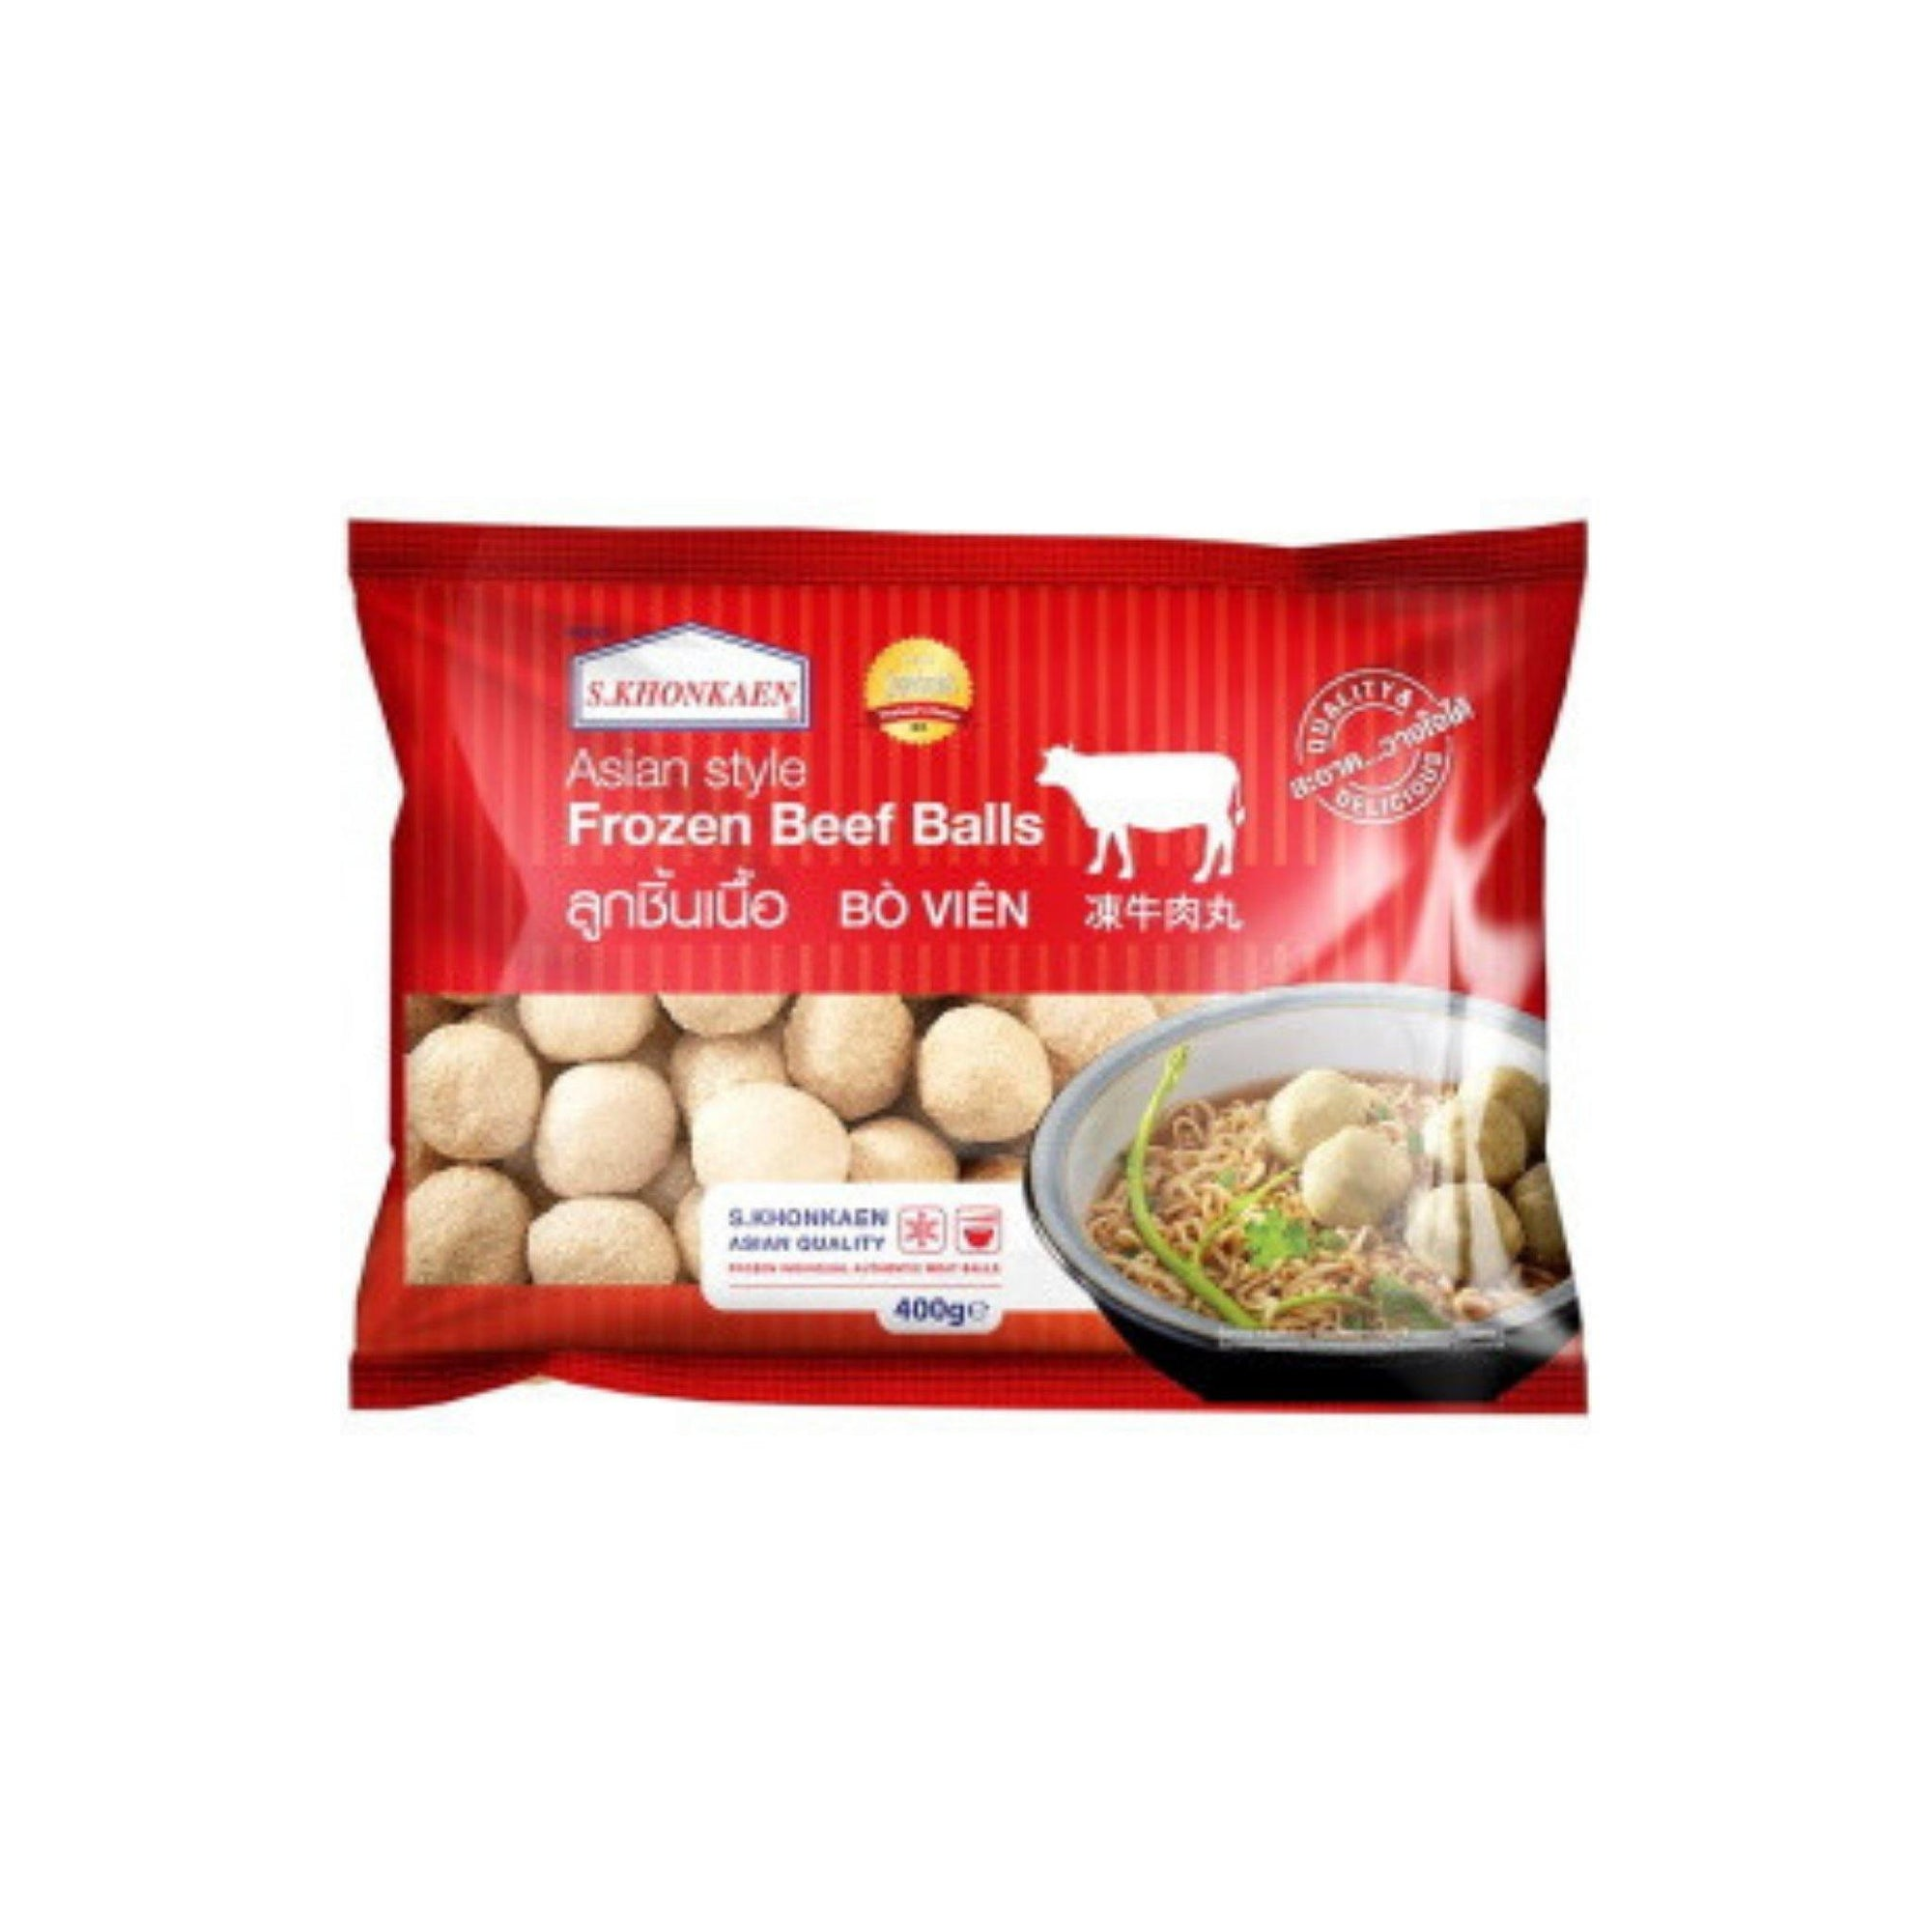 S. Khonkaen Frozen Beef Balls 400G - Asian Harvest